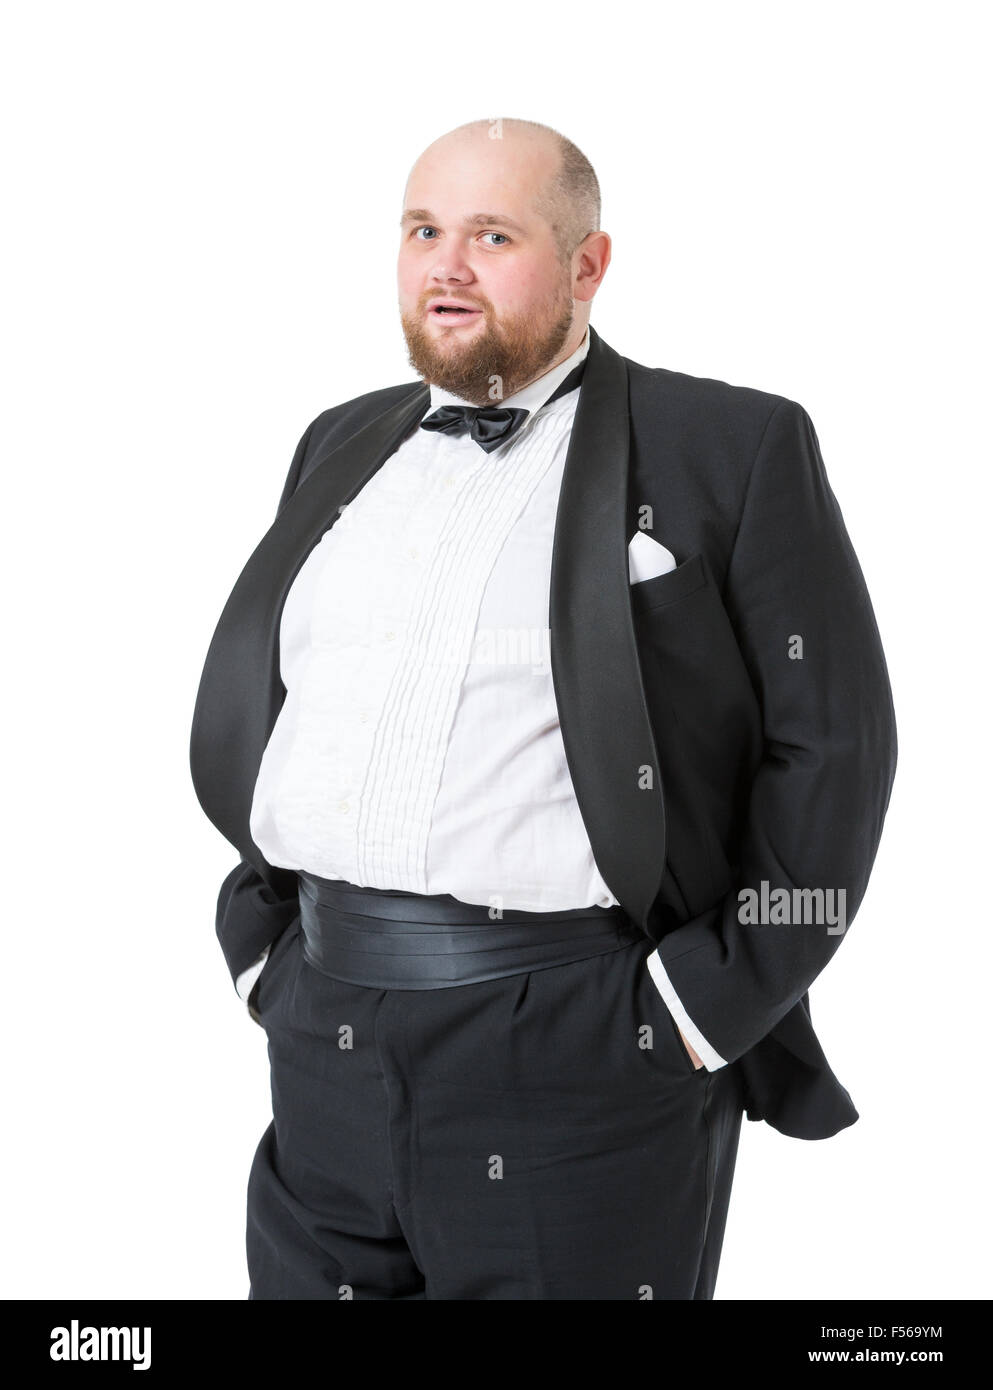 Jolly Fat Man in Tuxedo and Bow tie Shows Emotions, on white background - Stock Image